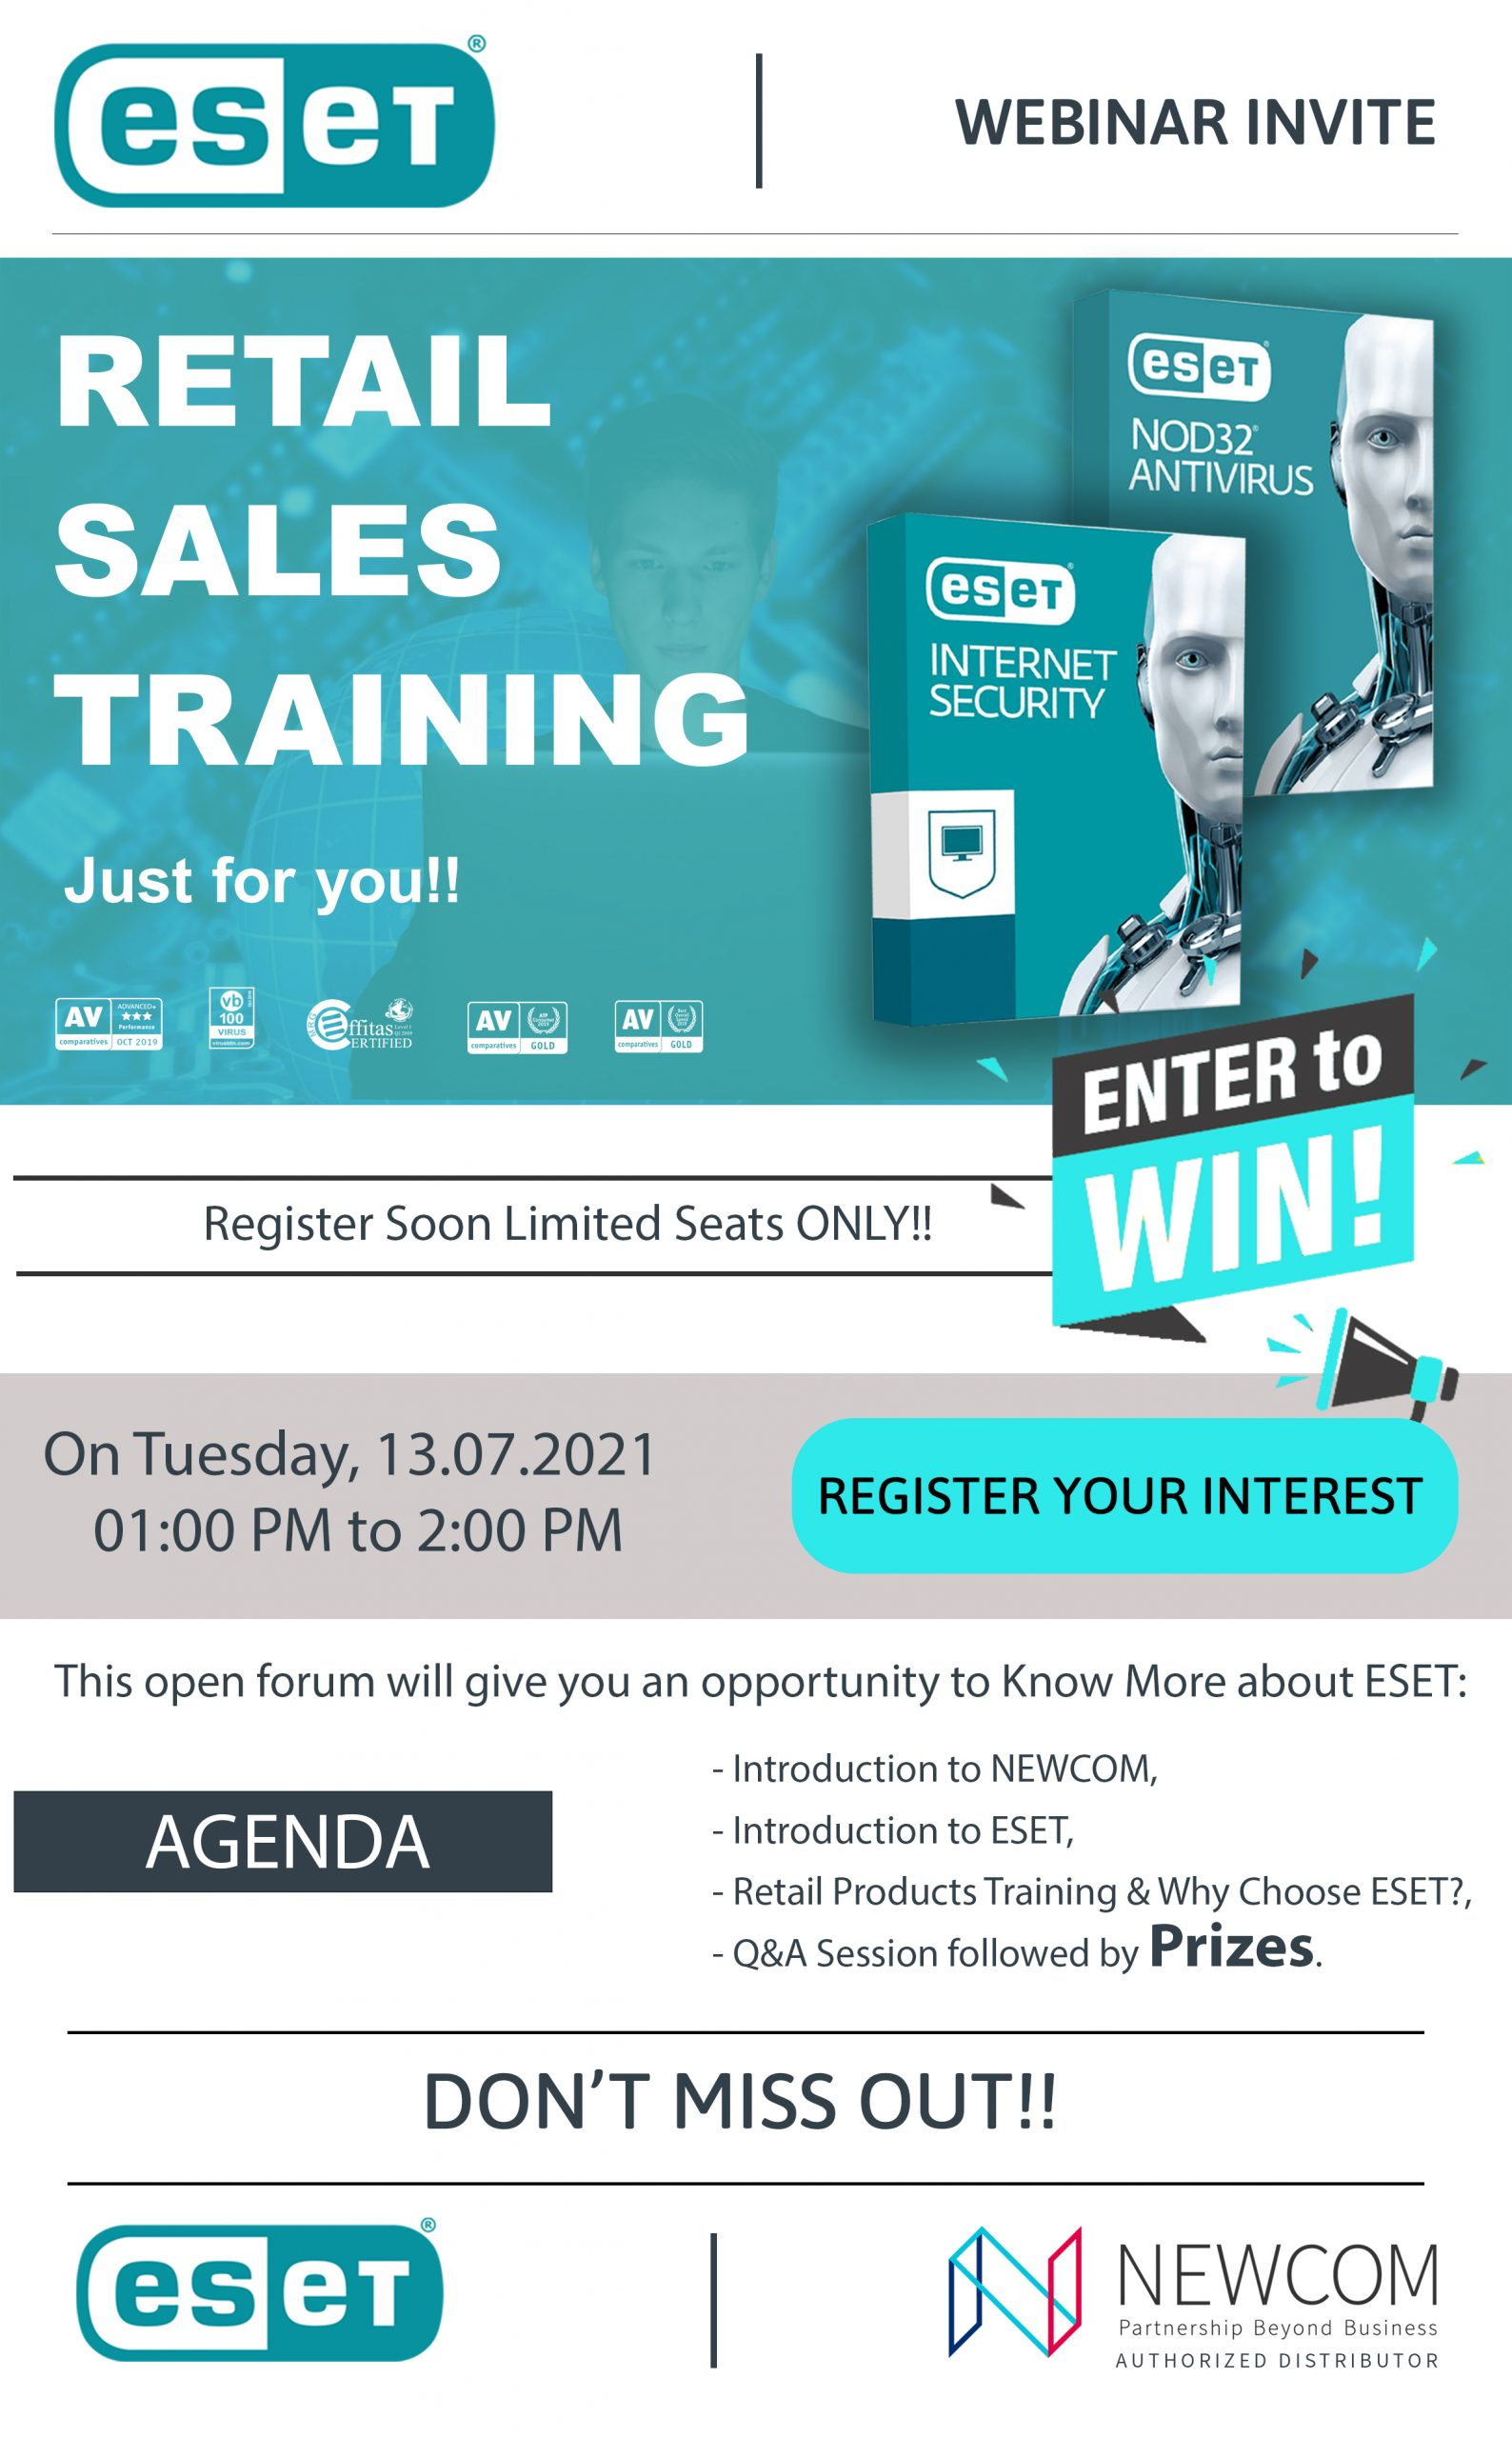 ESET® Retail Sales Training Hosted by NEWCOM